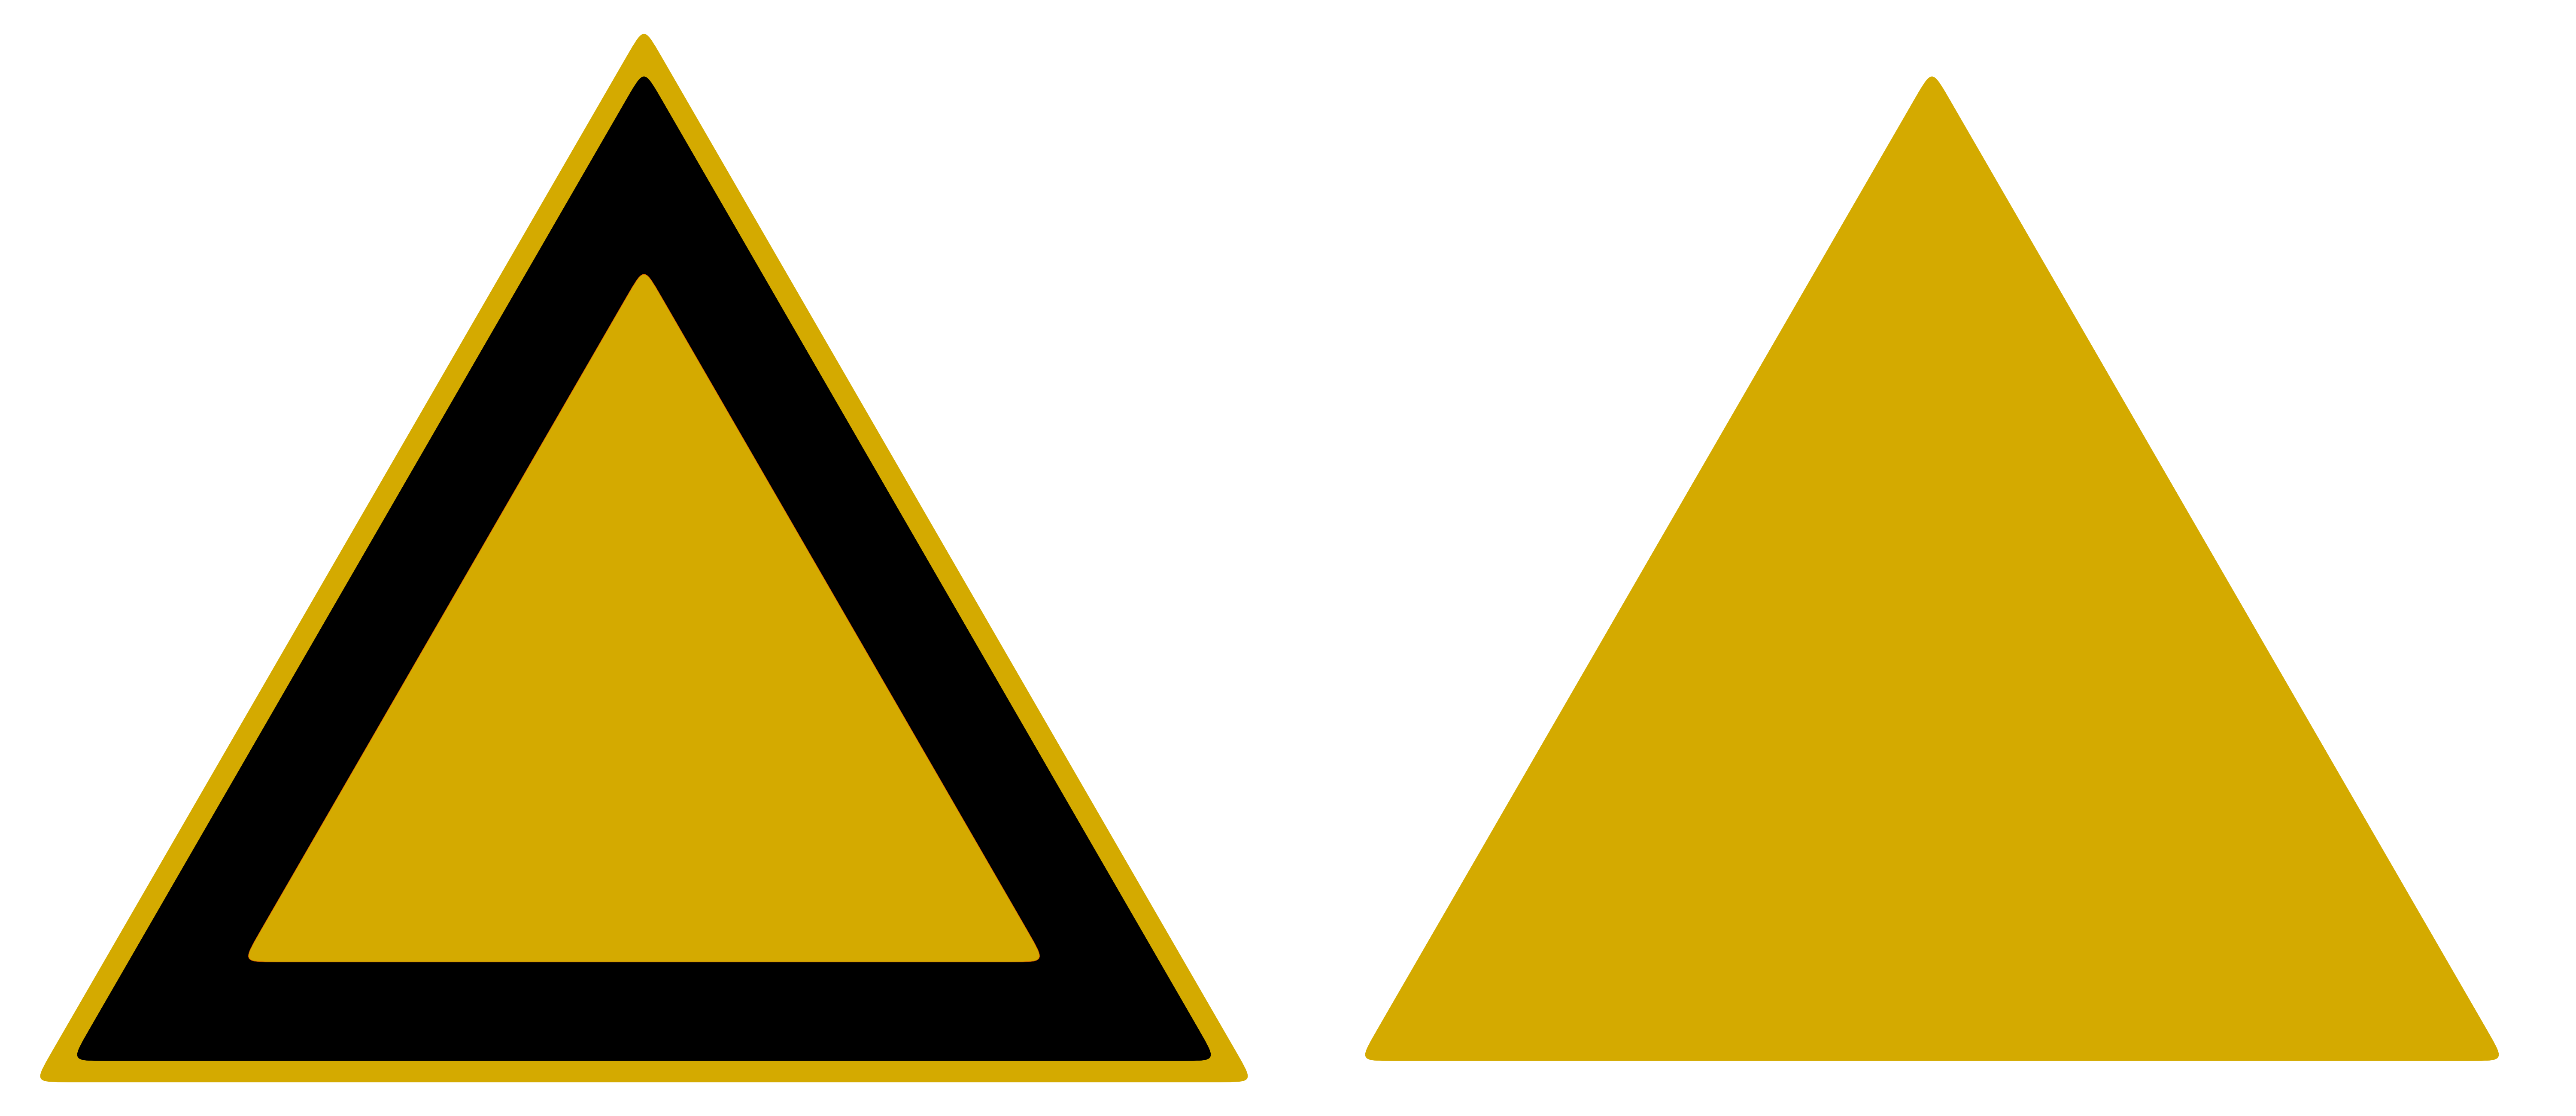 Yellow triangle png. Sign model stock by